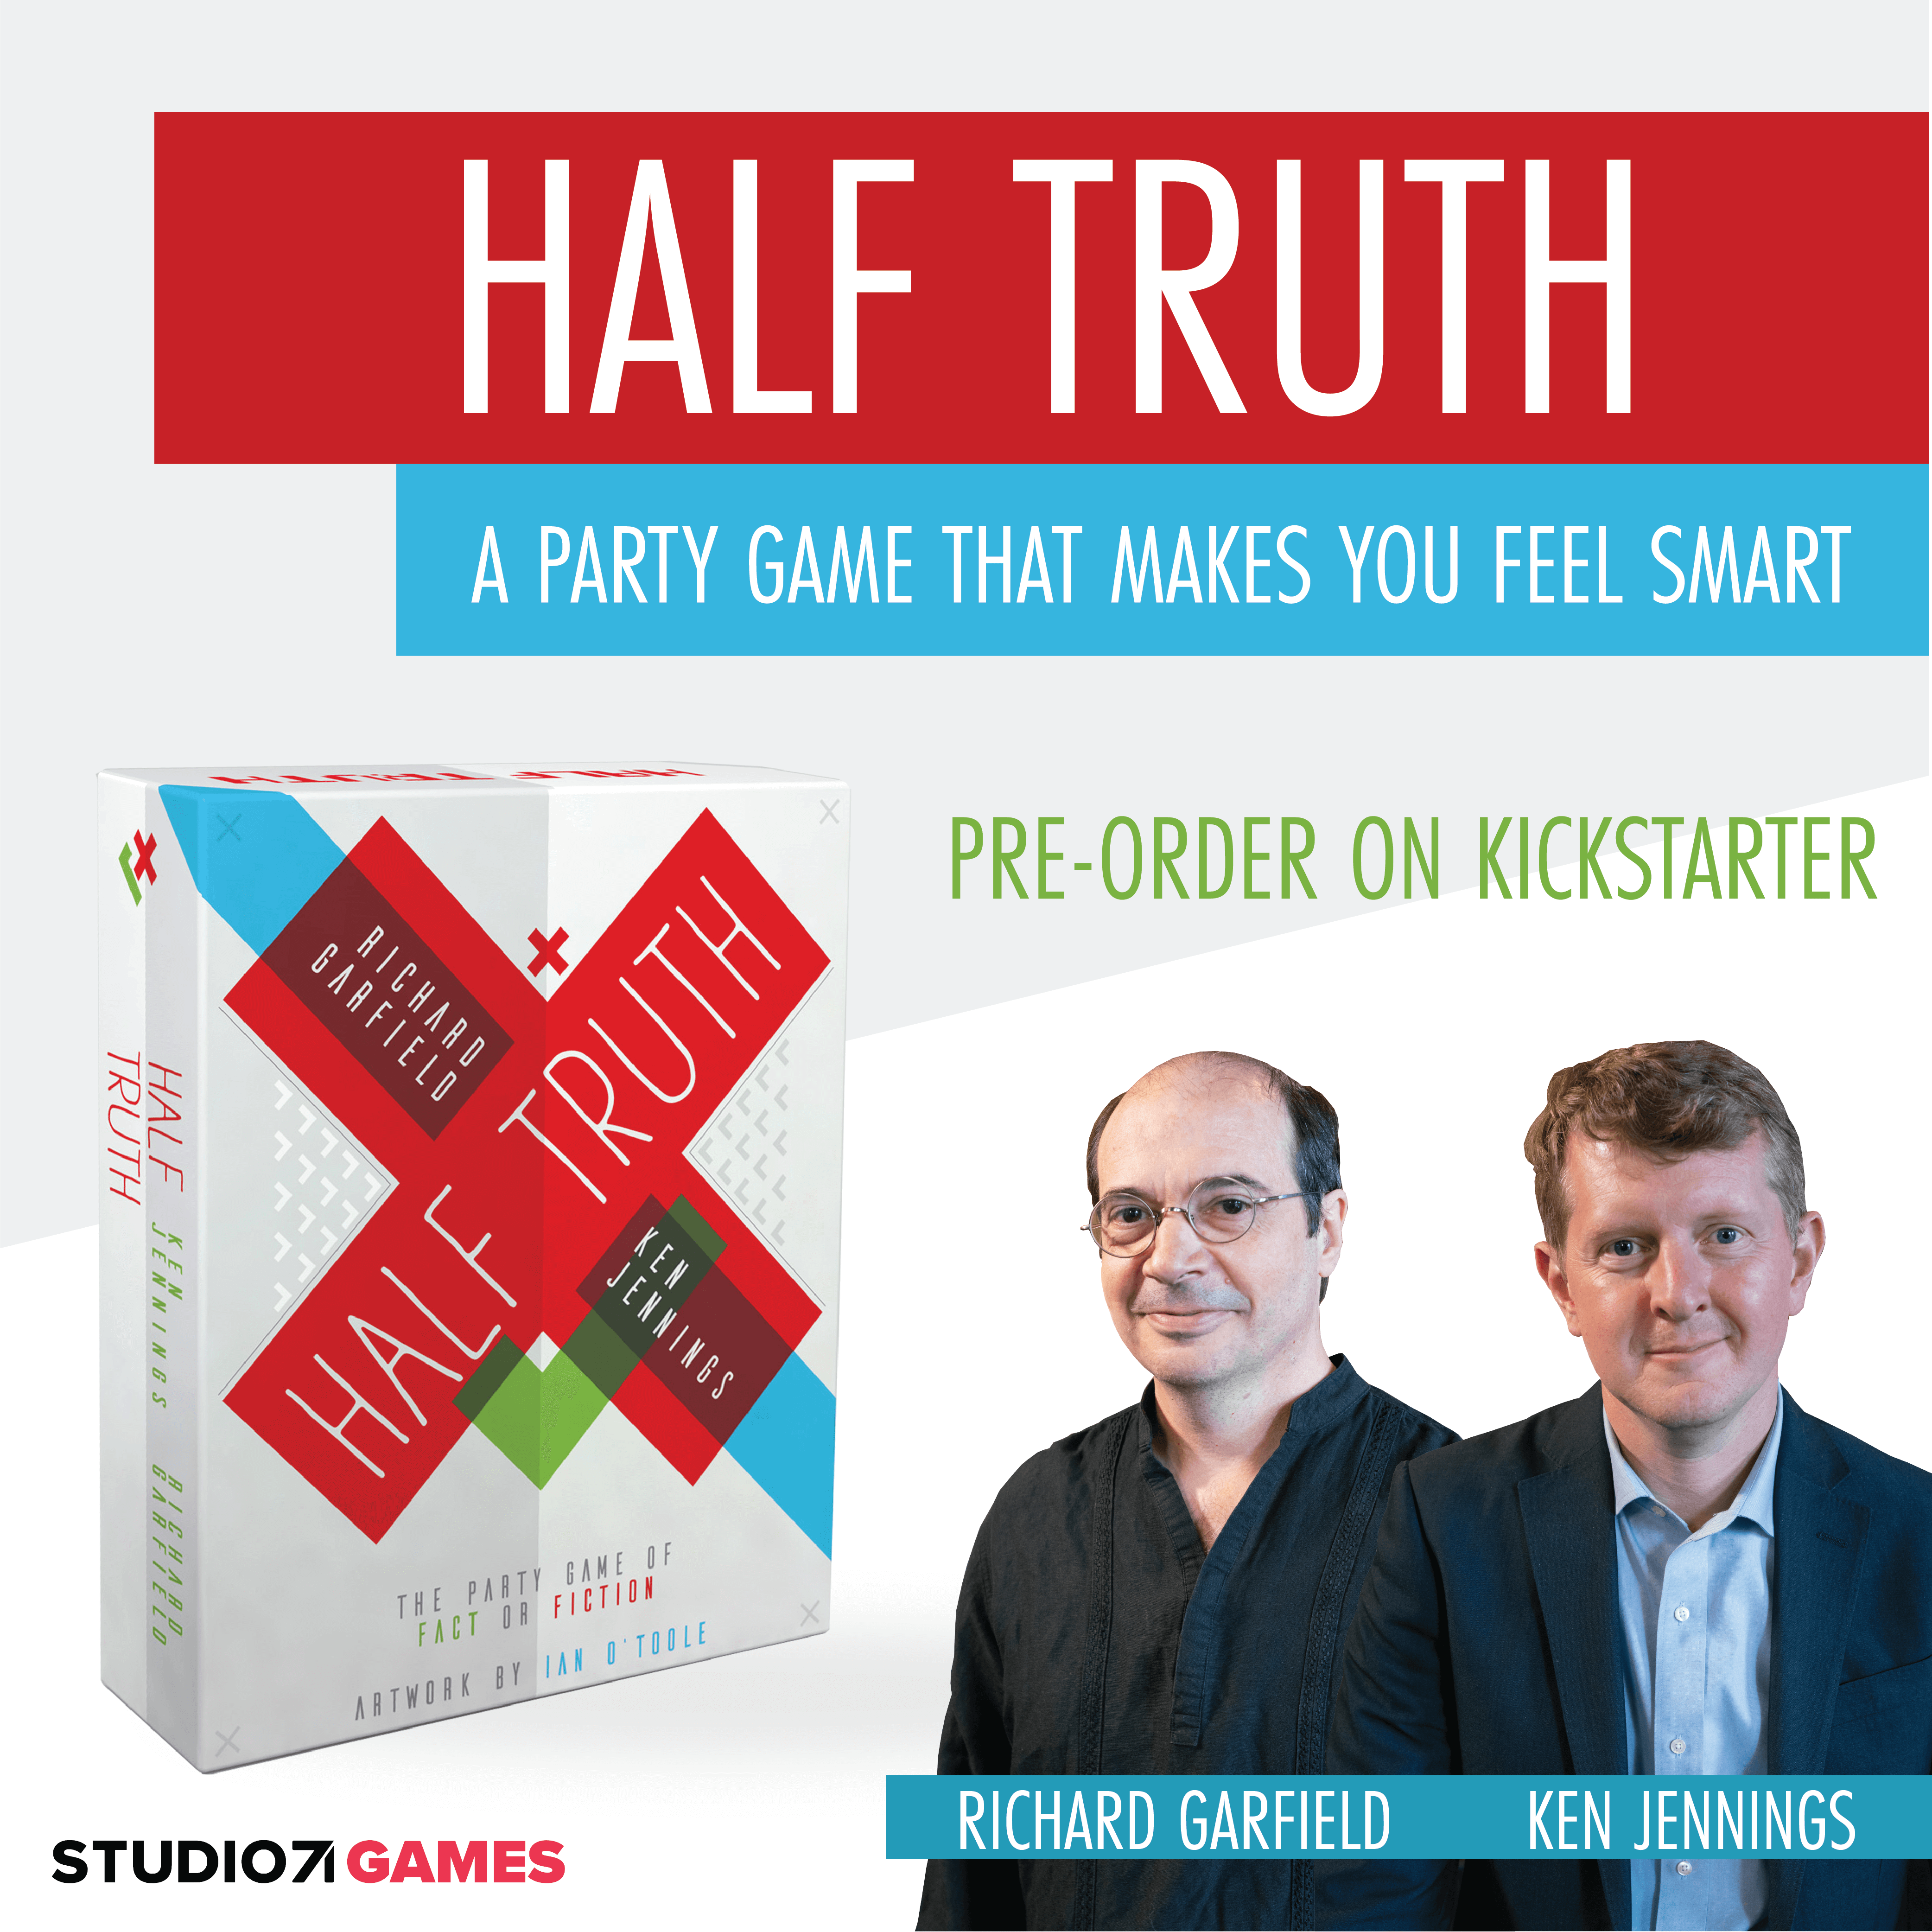 half truth promotional image featuring Richard Garfield, Ken Jennings, and Studio 71. The image reads: Half Truth, a party game that makes you feel smart. pre-order on Kickstarter